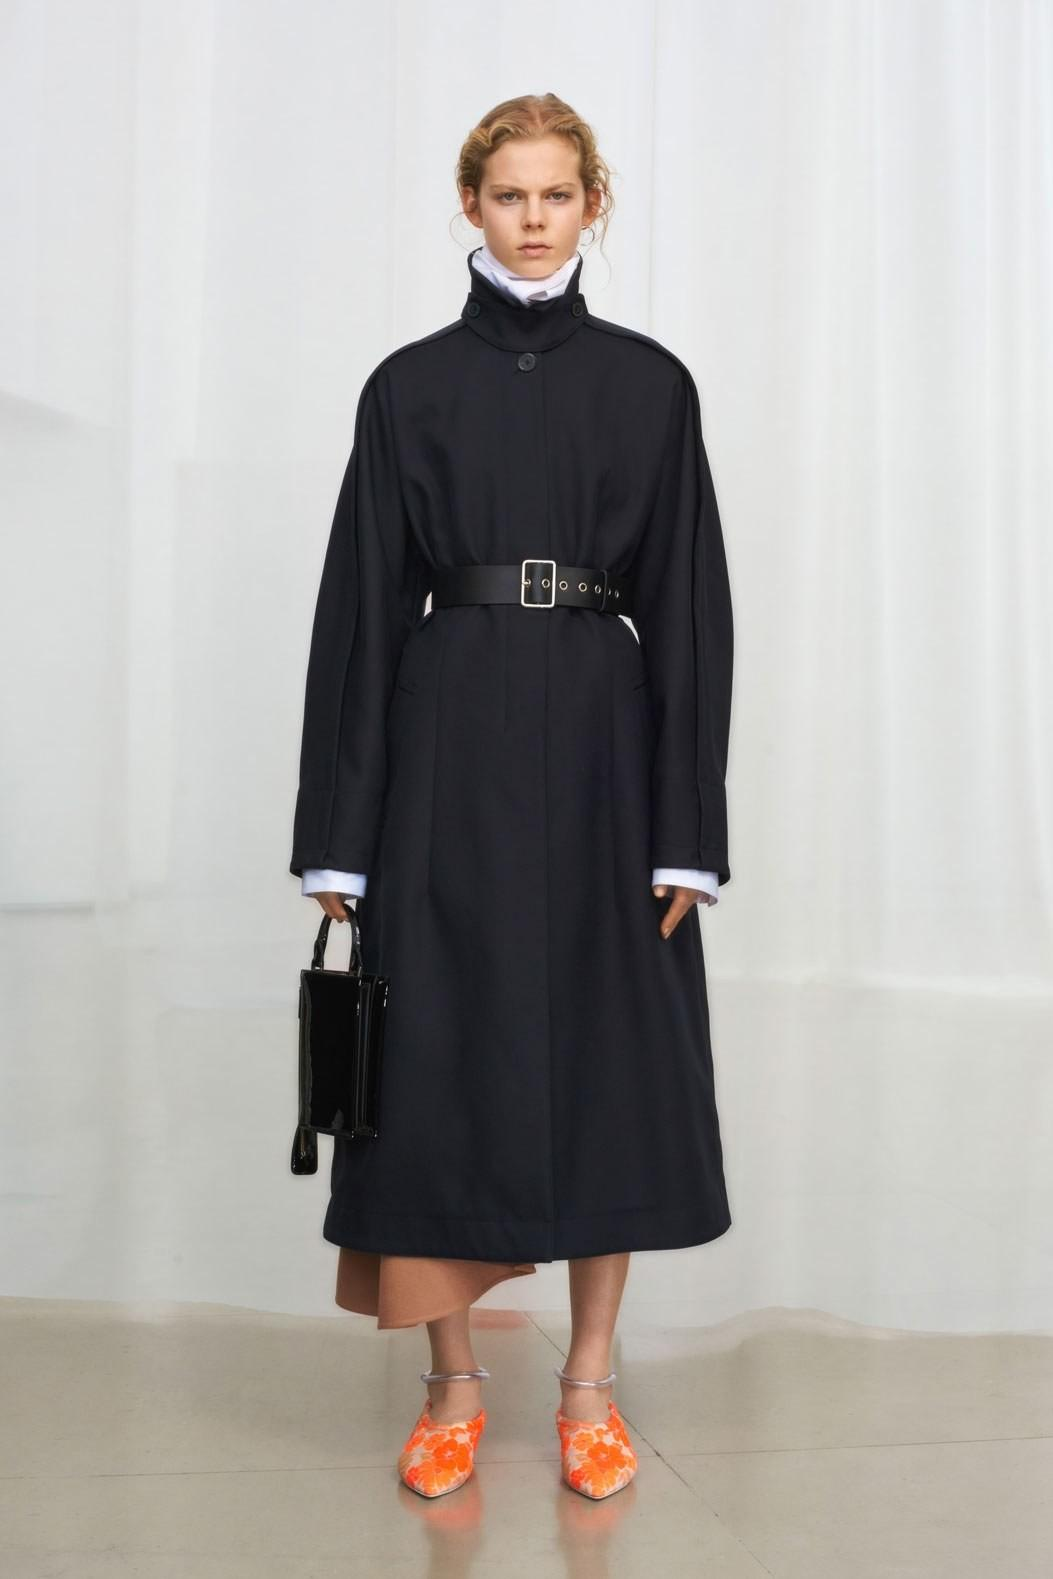 Jil Sander Pre Fall 2018 Collection Les Ons